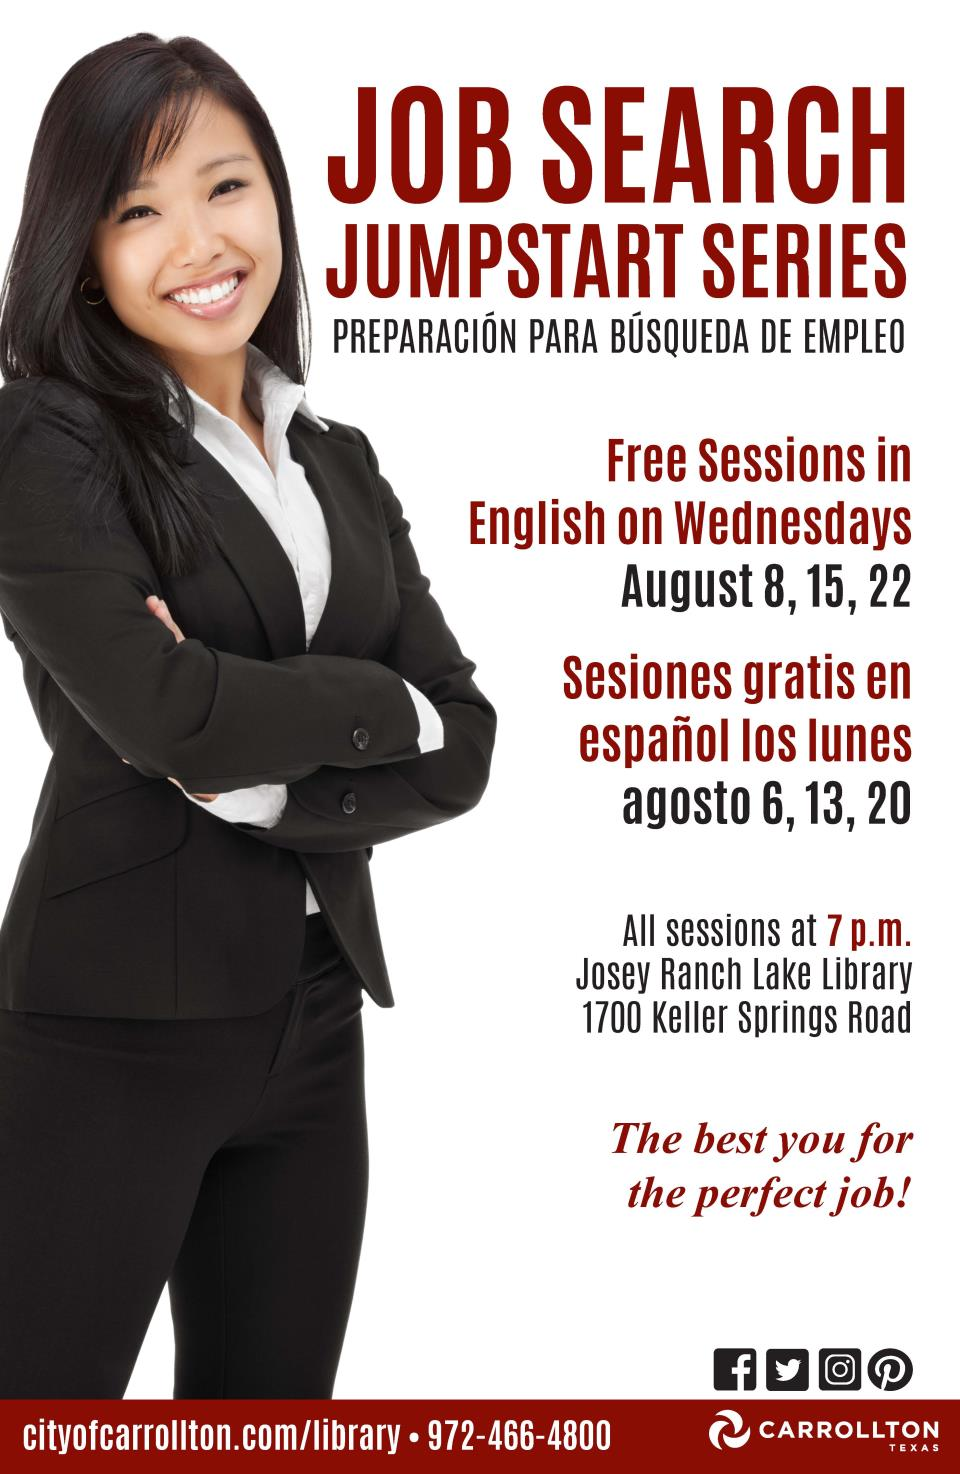 Job Search Jumpstart Series_Image